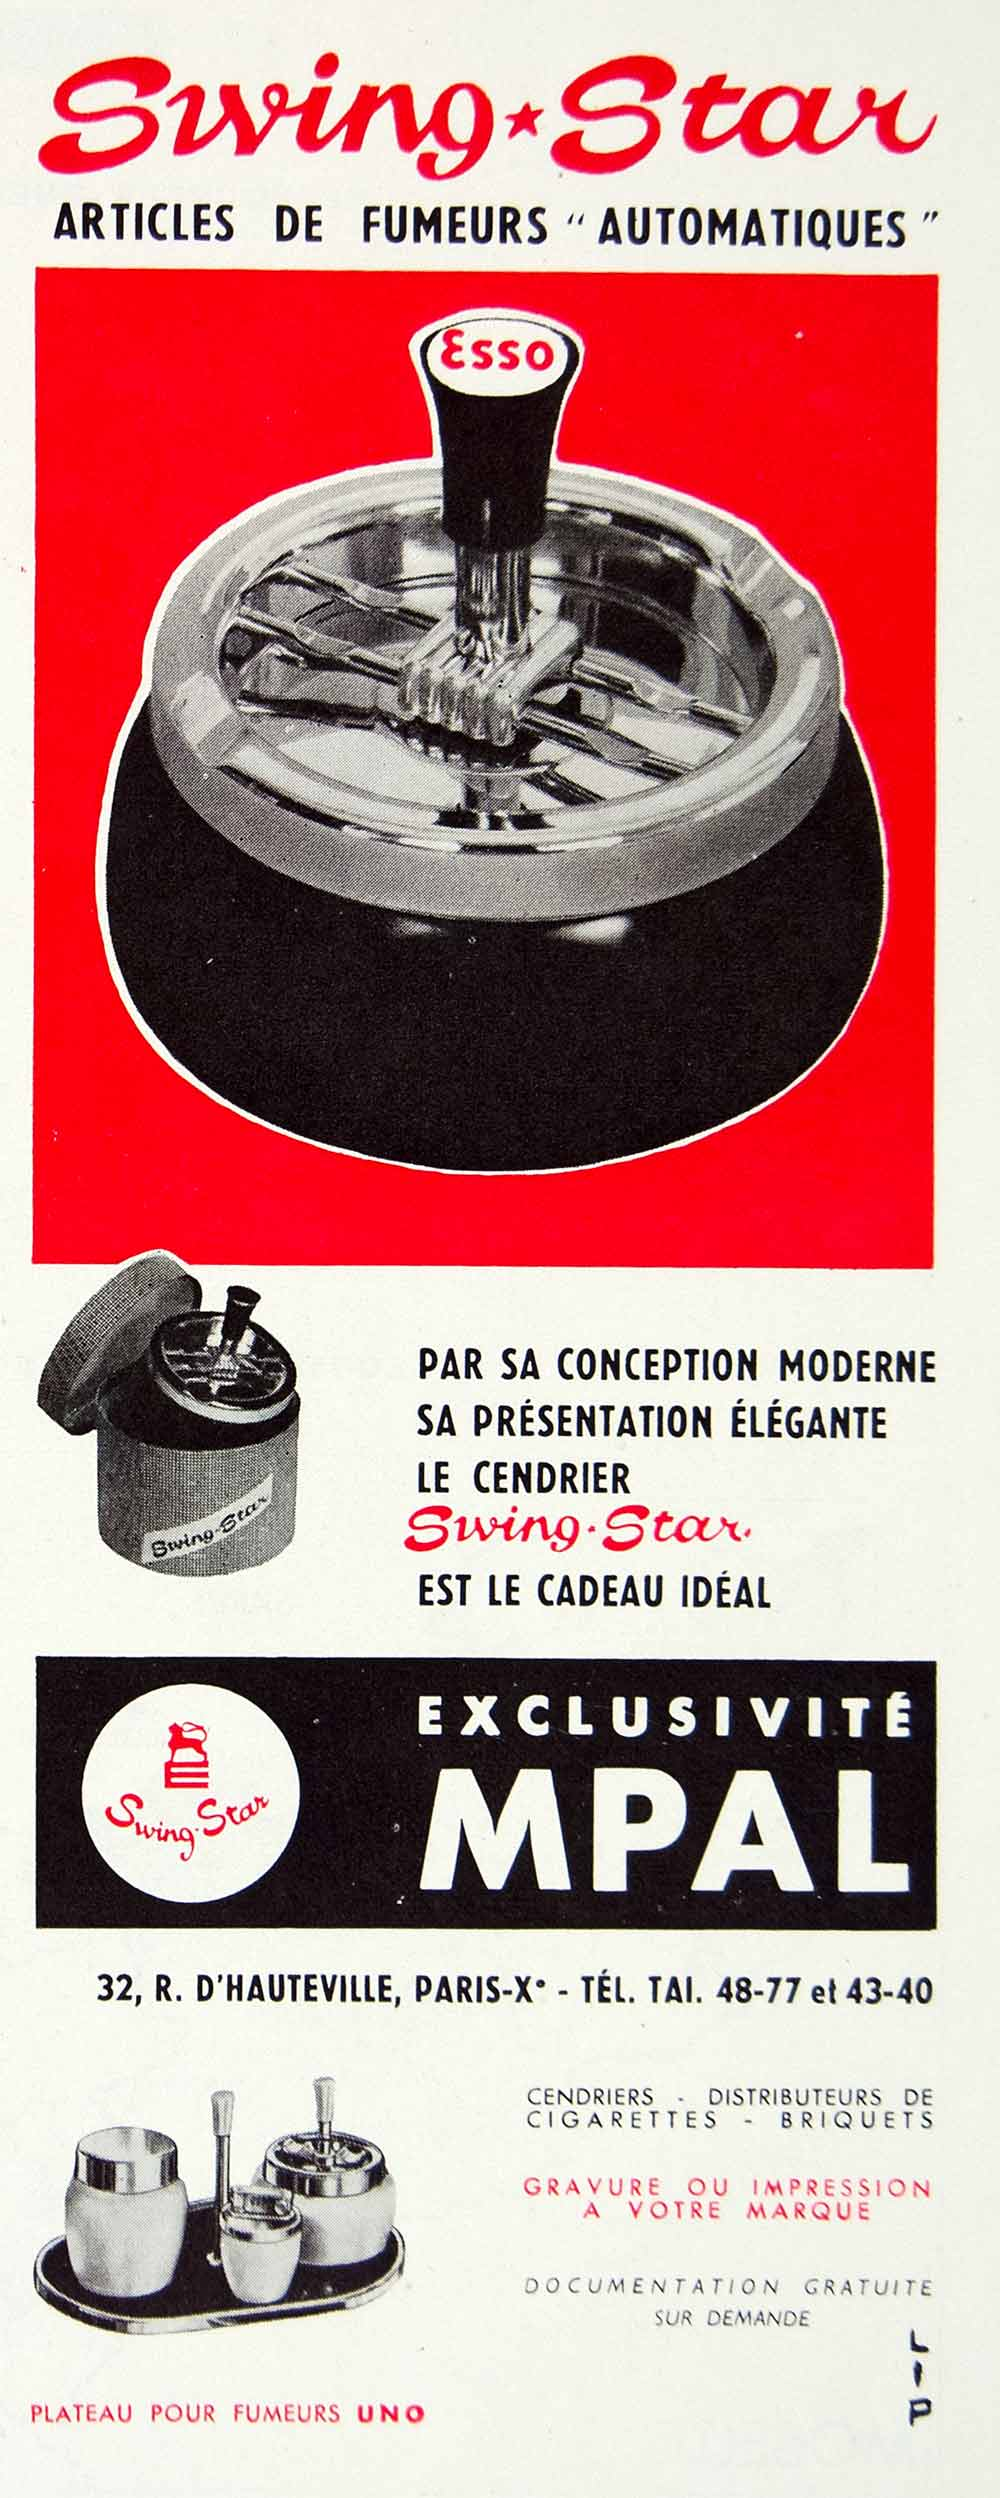 1956 Vintage French Ad Swing Star Ashtray Cendrier Cigarette Smoking MPAL VENA5